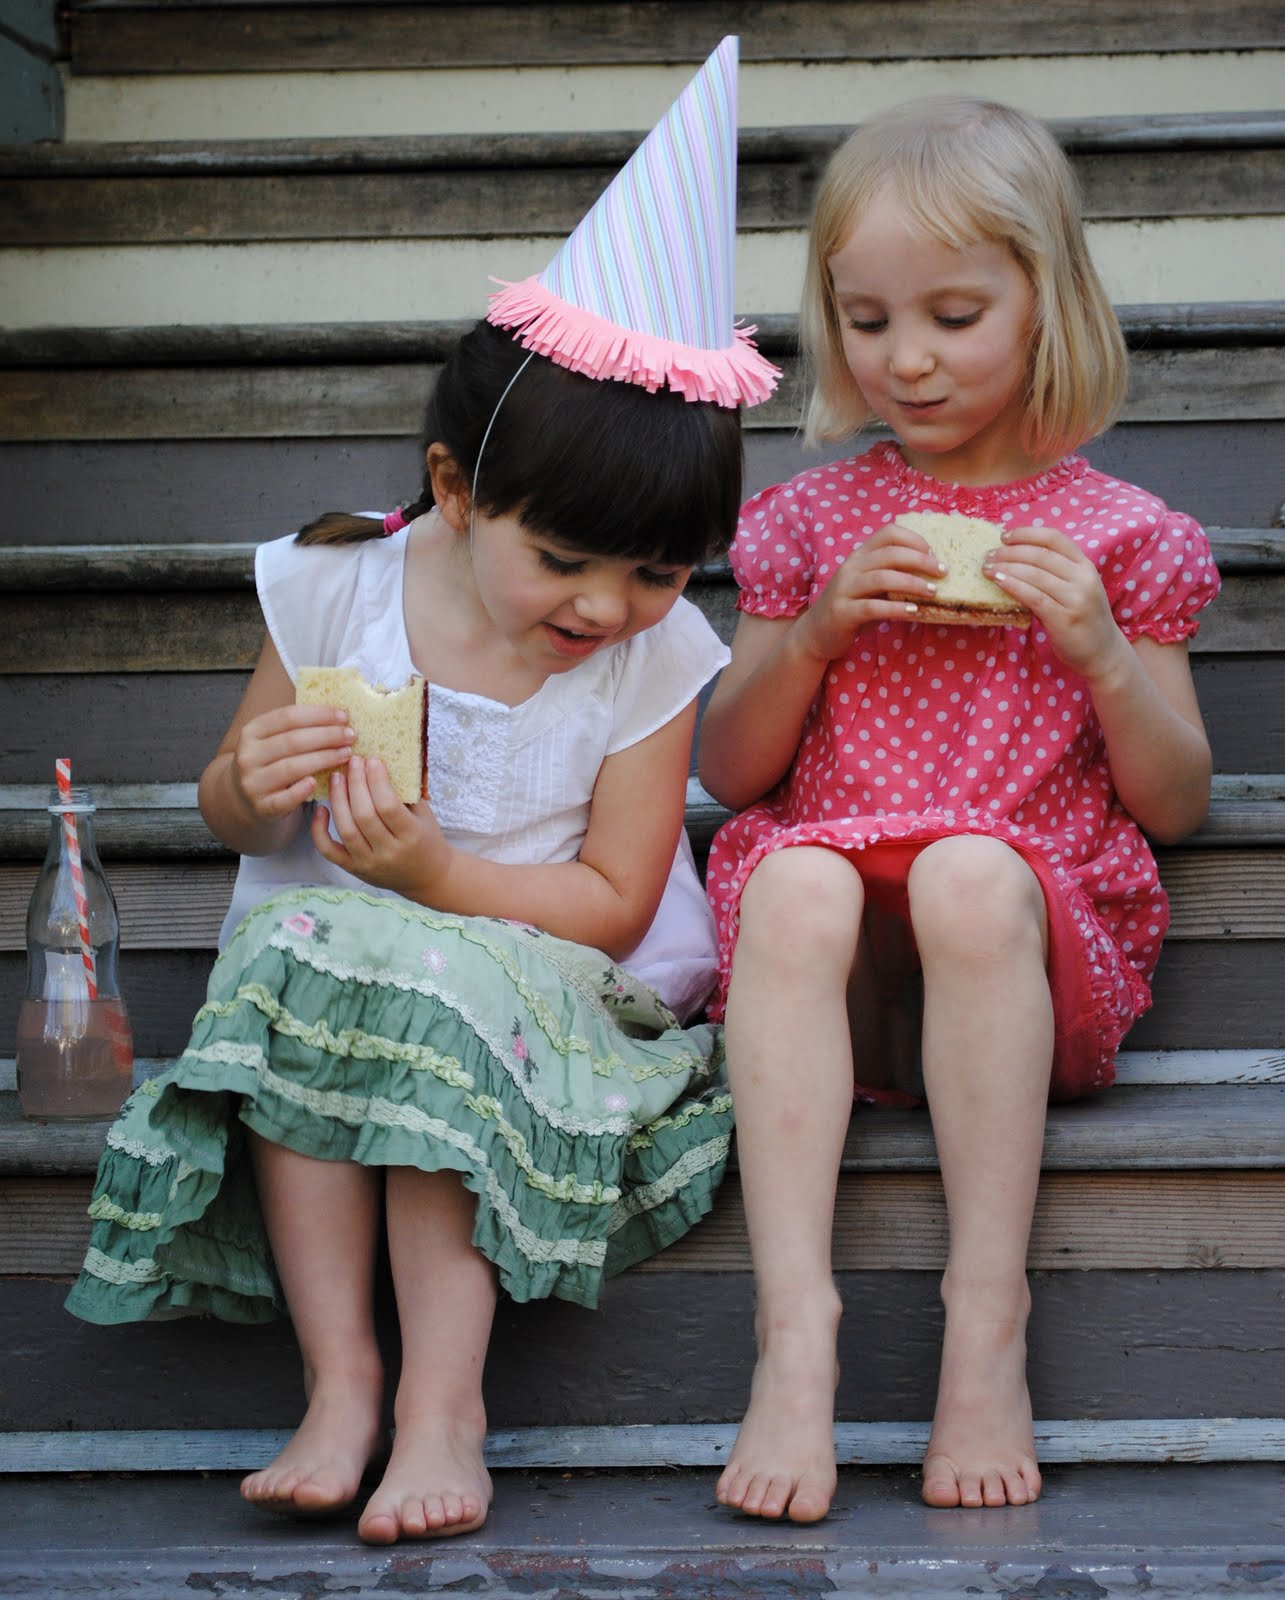 east sandwich girls Find a great location for a girl's birthday party in east sandwich, massachusetts search our birthday venue database for top birthday party locations in east sandwich, massachusetts for your child.